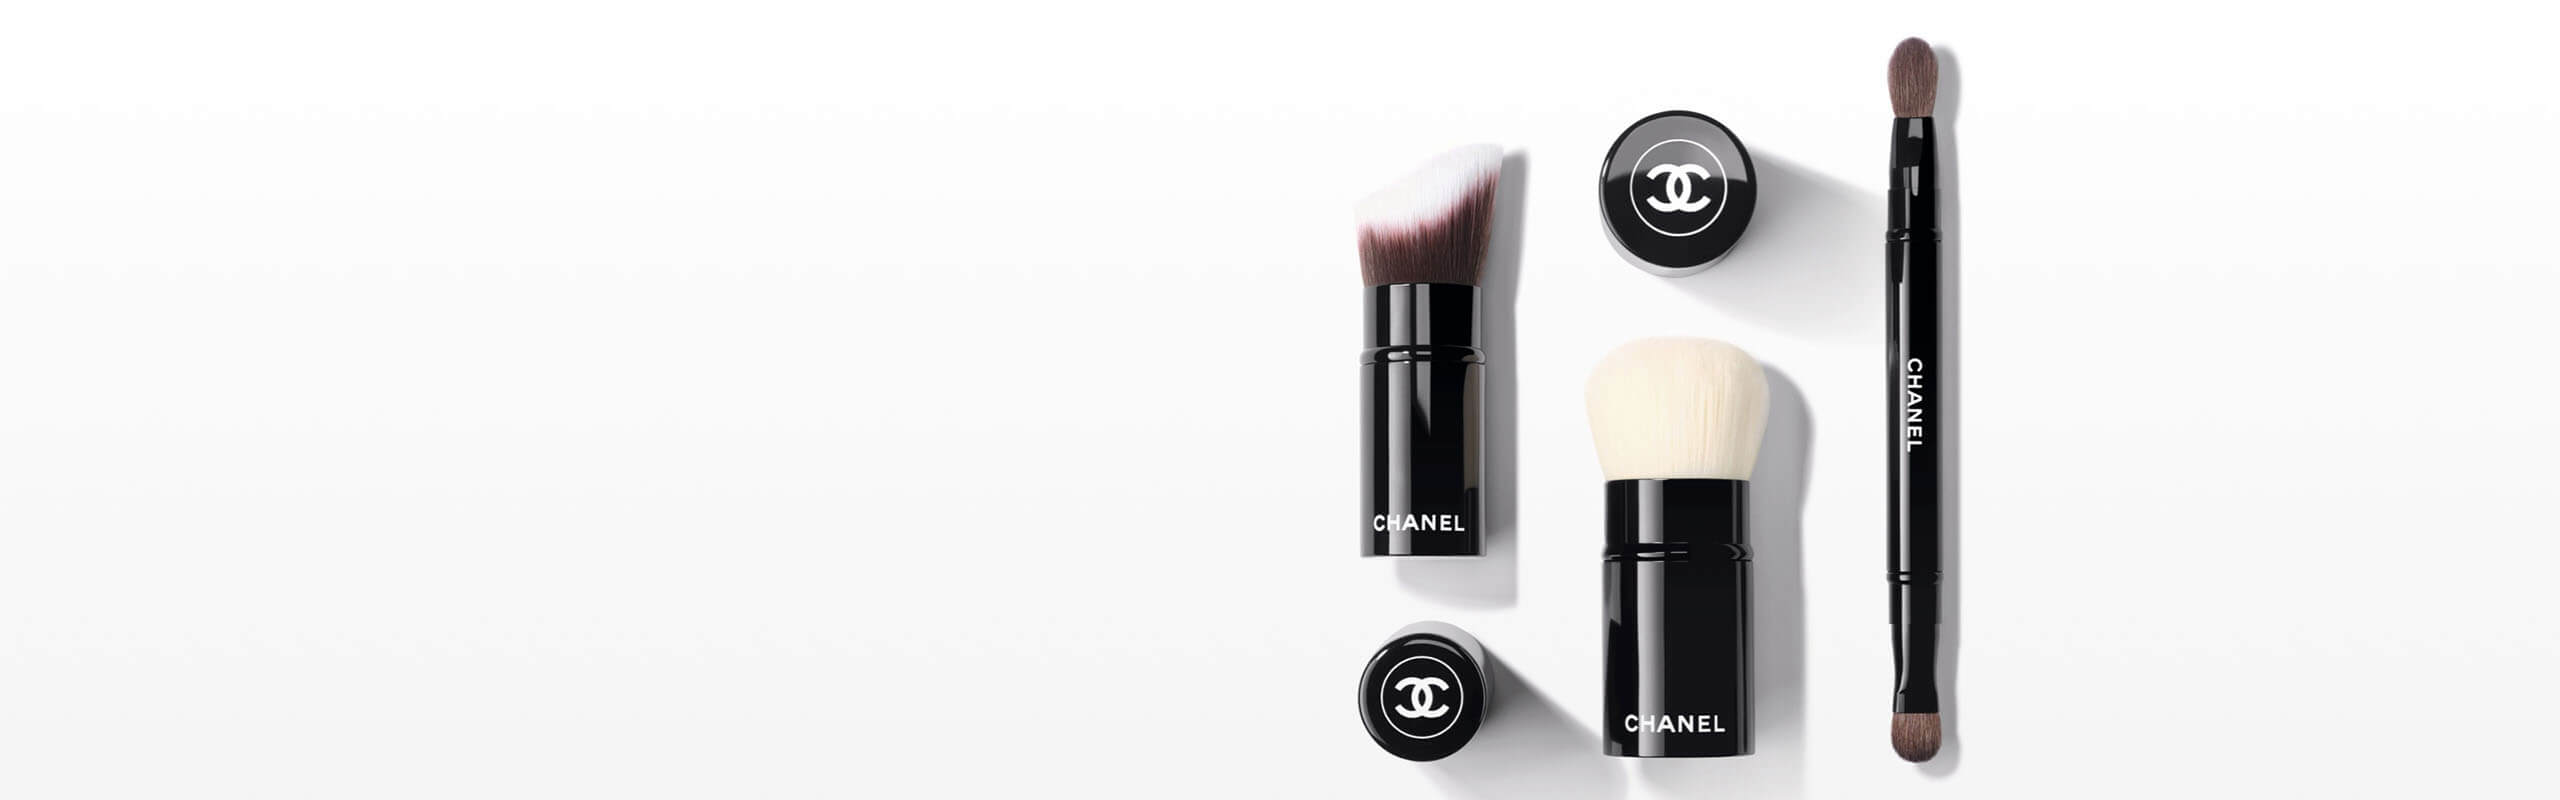 Complexion Brushes - 彩妆 | CHANEL